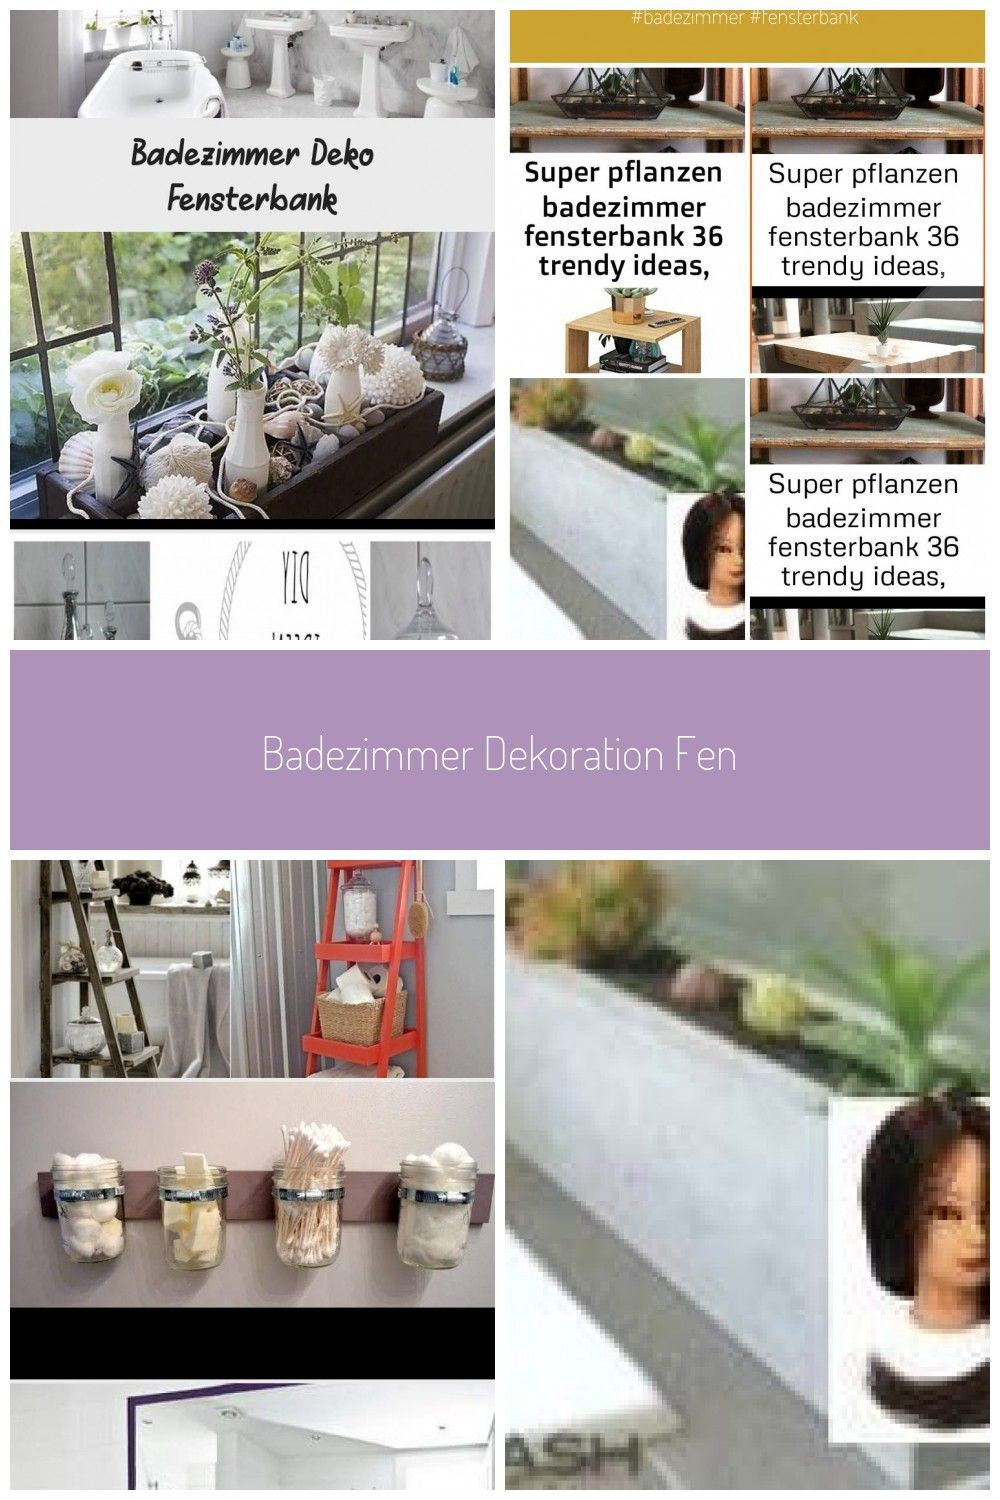 Photo of Badezimmer Dekoration Fensterbank,  #Badezimmer #dekoration #Fensterbank #fenste…